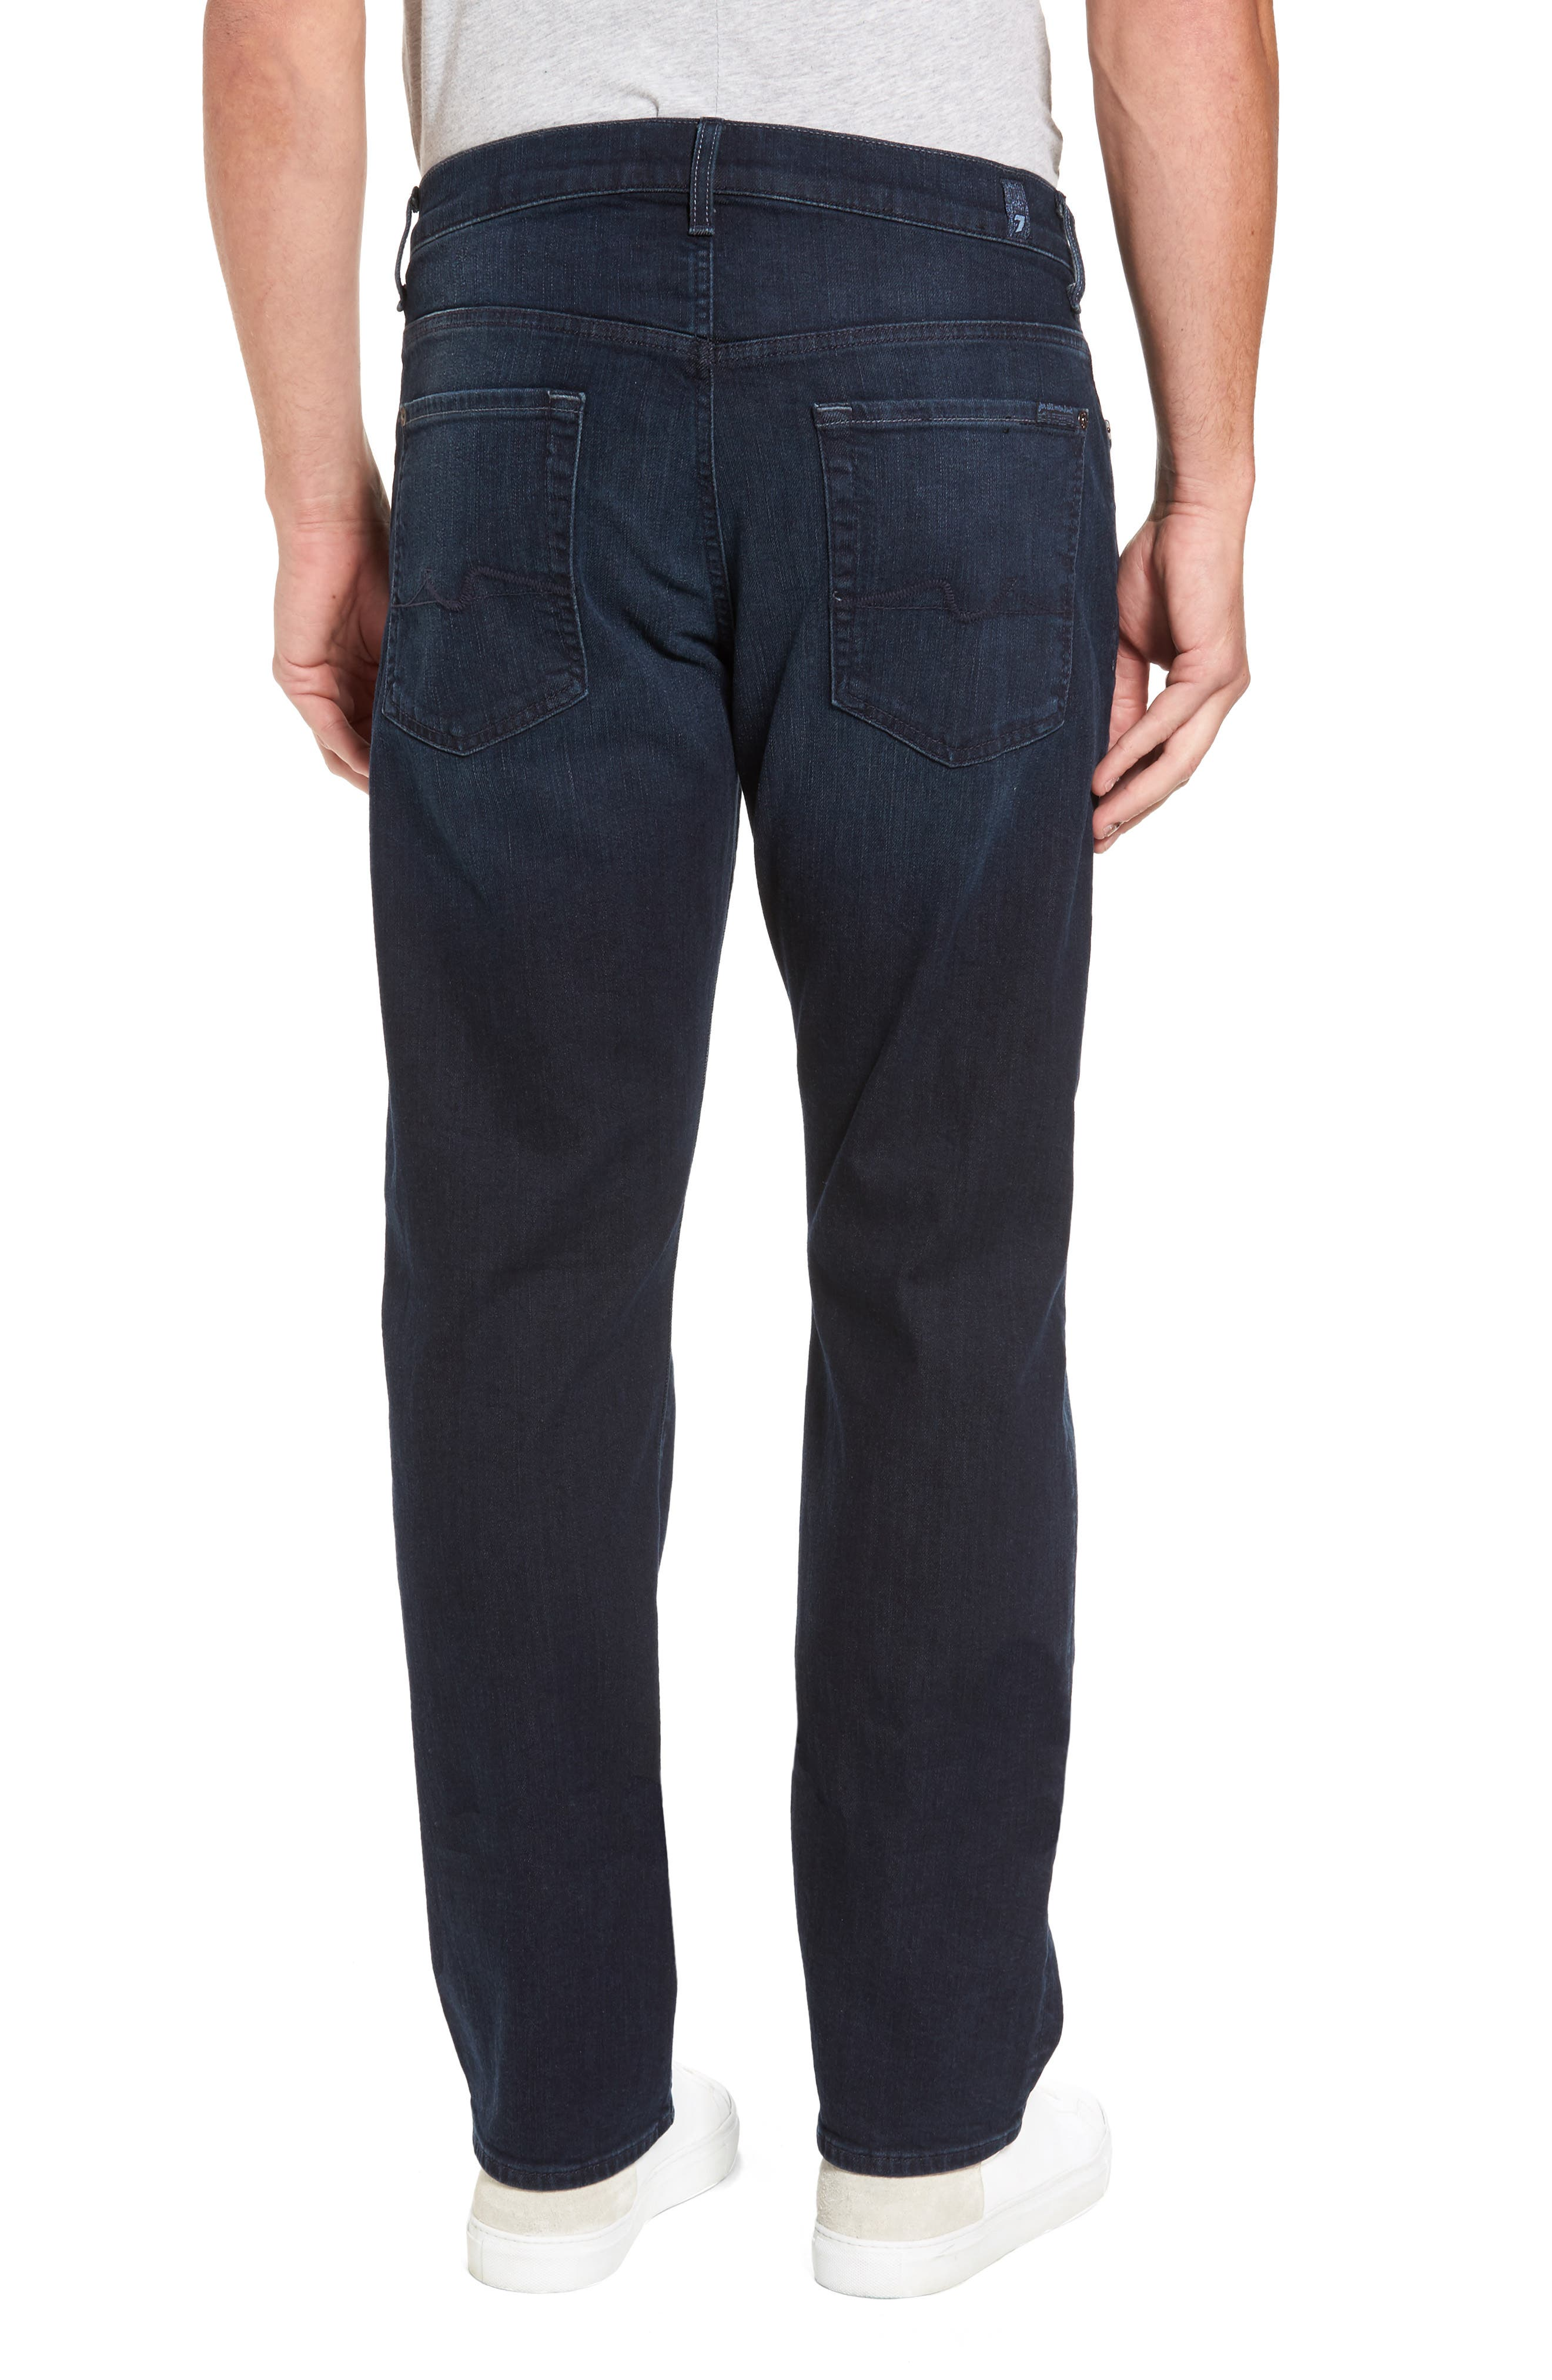 Luxe Performance - Carsen Straight Leg Jeans,                             Alternate thumbnail 2, color,                             DARK CURRENT